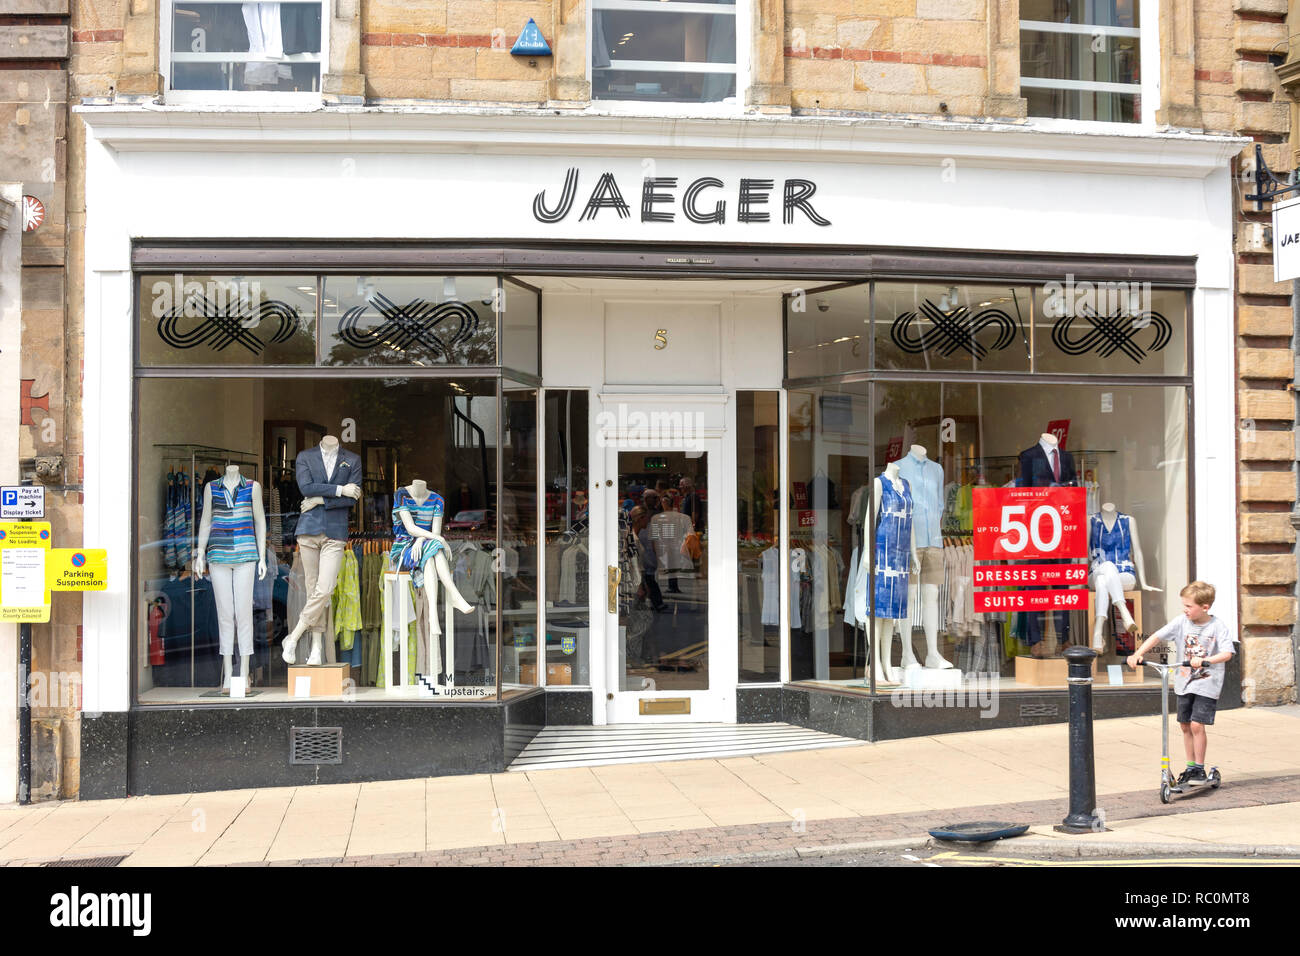 Möbel Jäger Online Shop Jaeger Fashion Stock Photos Jaeger Fashion Stock Images